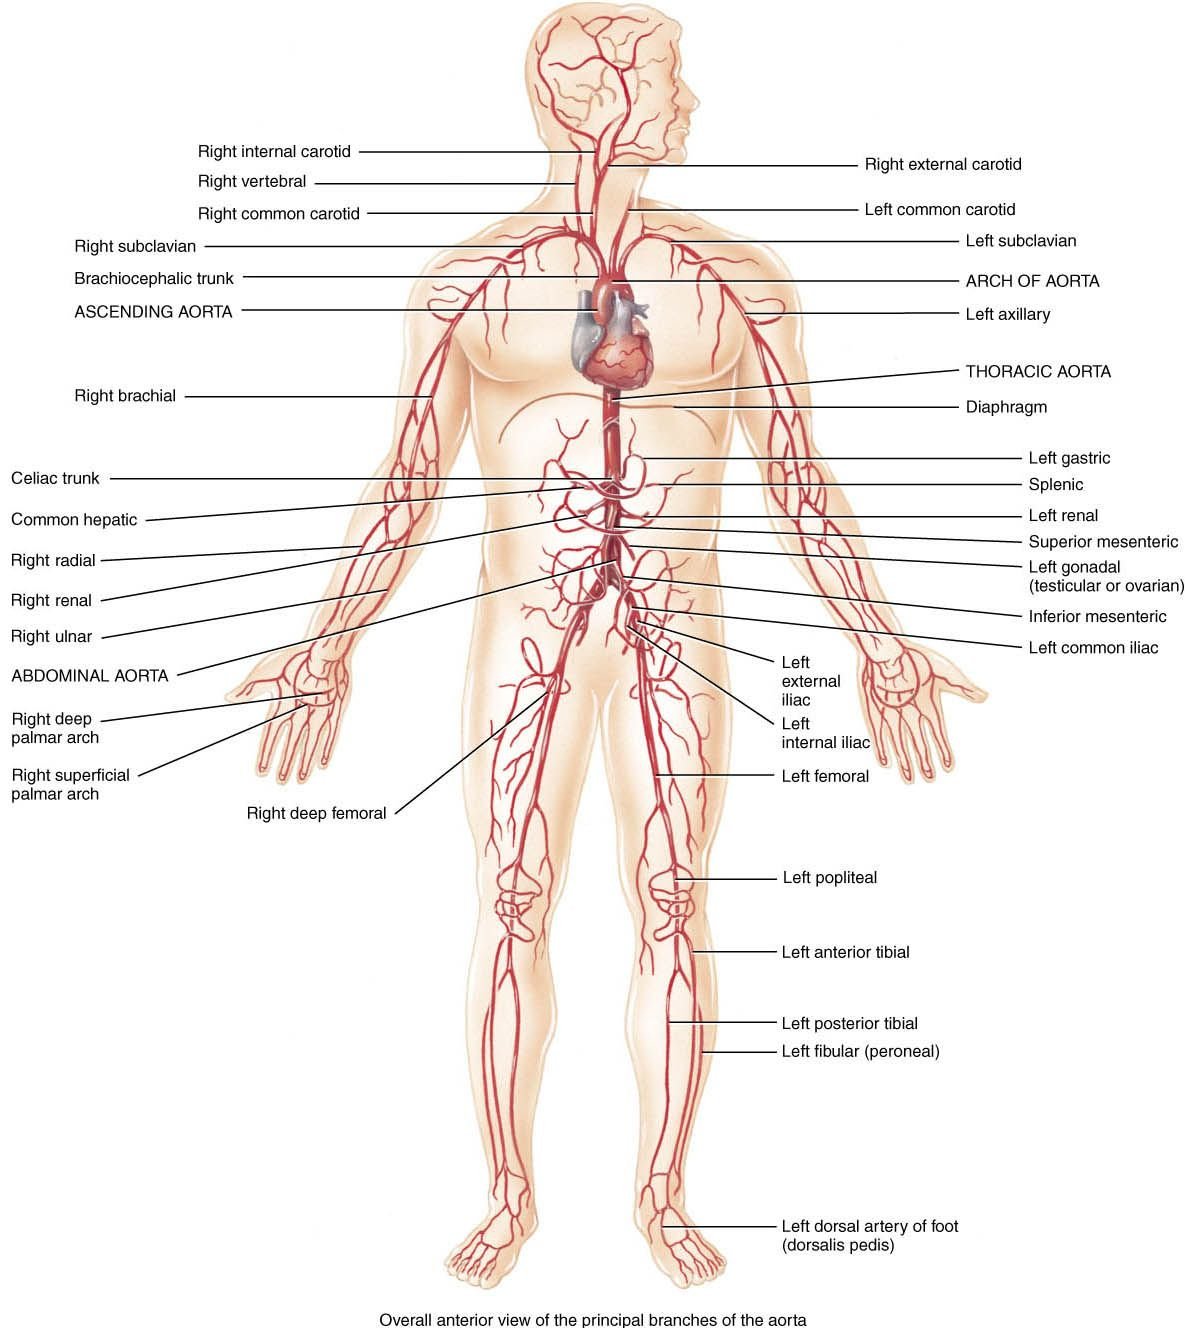 X Ray Circuit Quiz Excellent Electrical Wiring Diagram House Generator Major Veins And Arteries In Body Useful Medical Assistant Info Pinterest